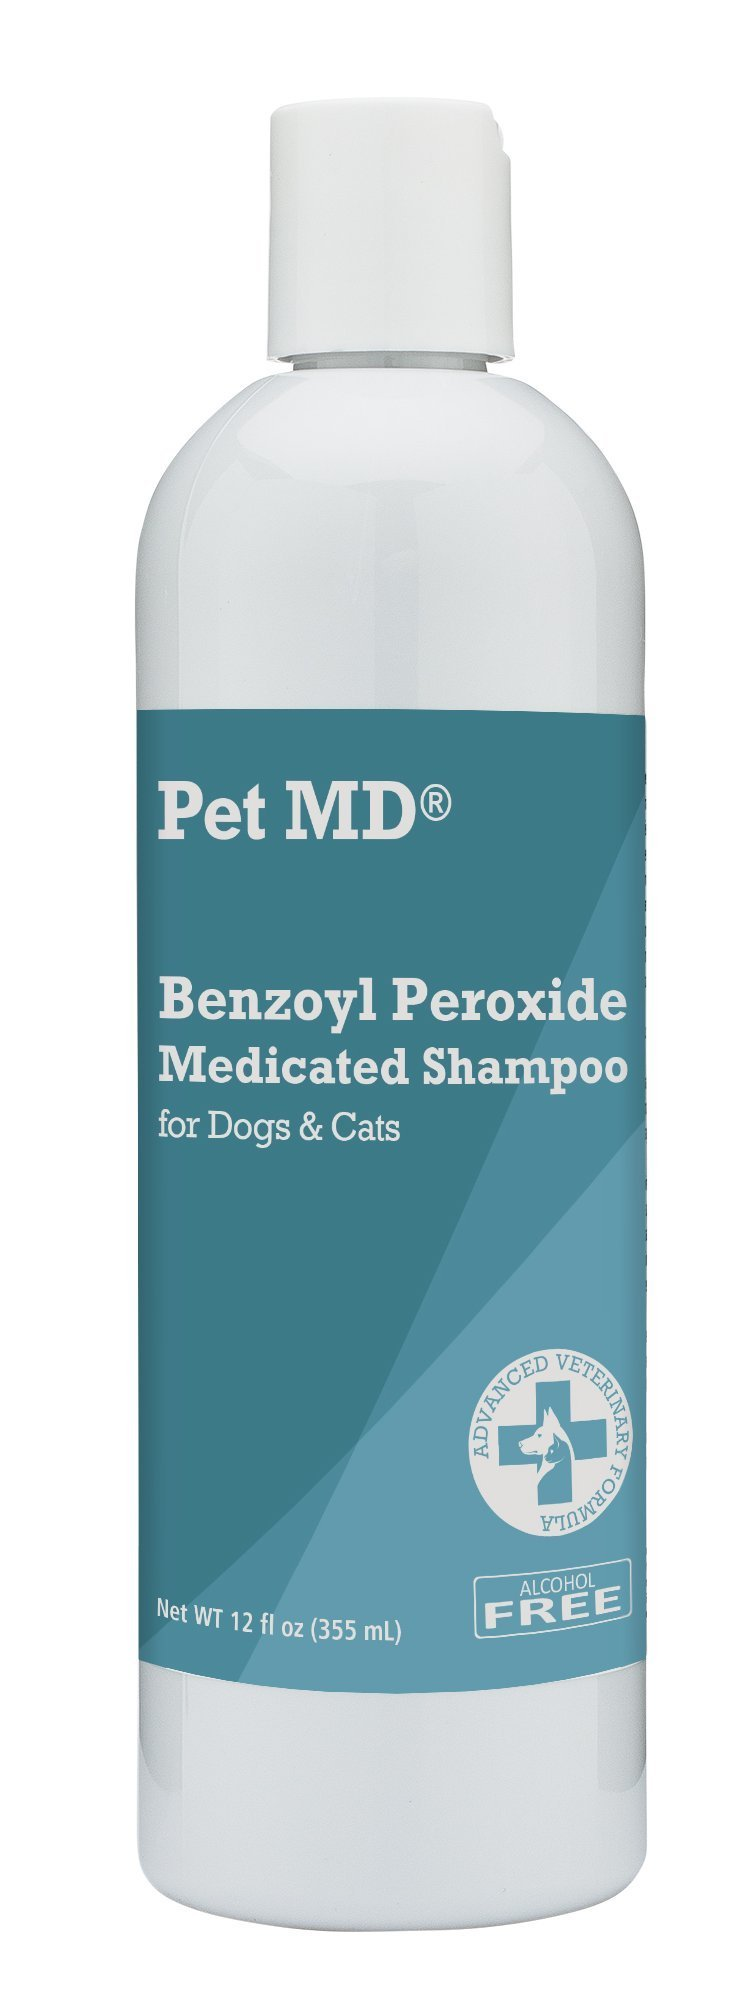 Pet MD - Benzoyl Peroxide Medicated Shampoo for Dogs and Cats - Effective for Skin Conditions, Dandruff, Itch Relief, Acne and Folliculitis - Citrus Scent - 12 oz